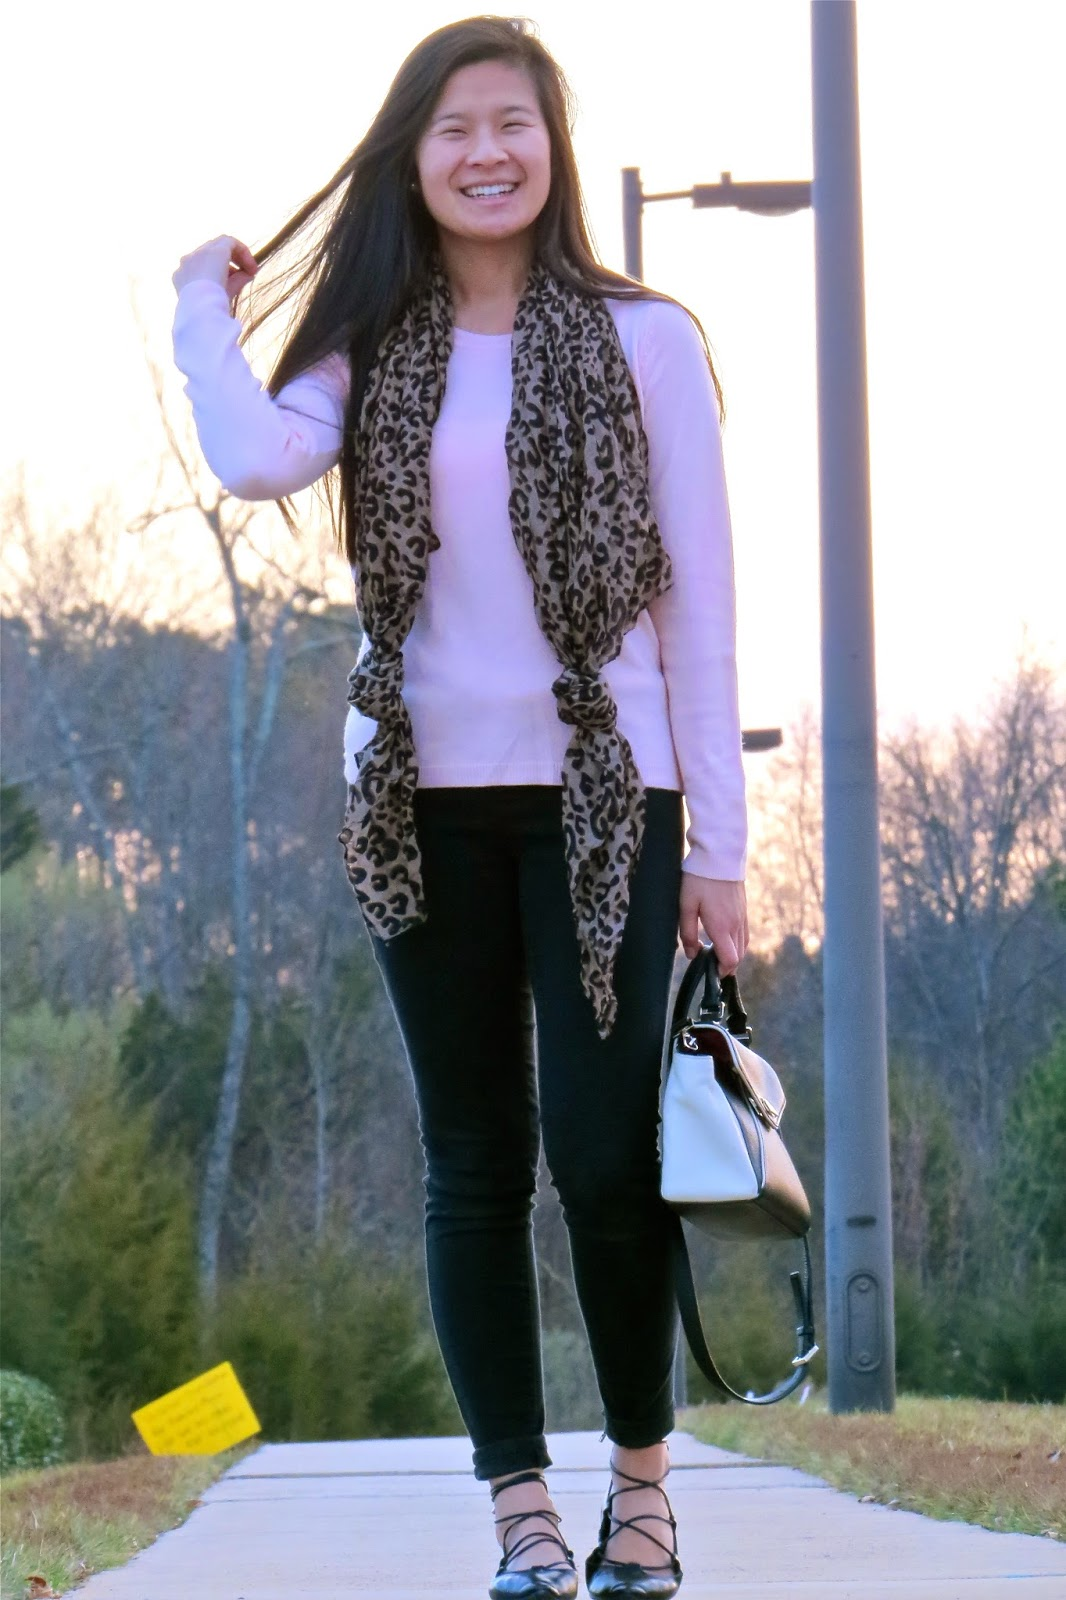 Leopard_and_pink_outfit